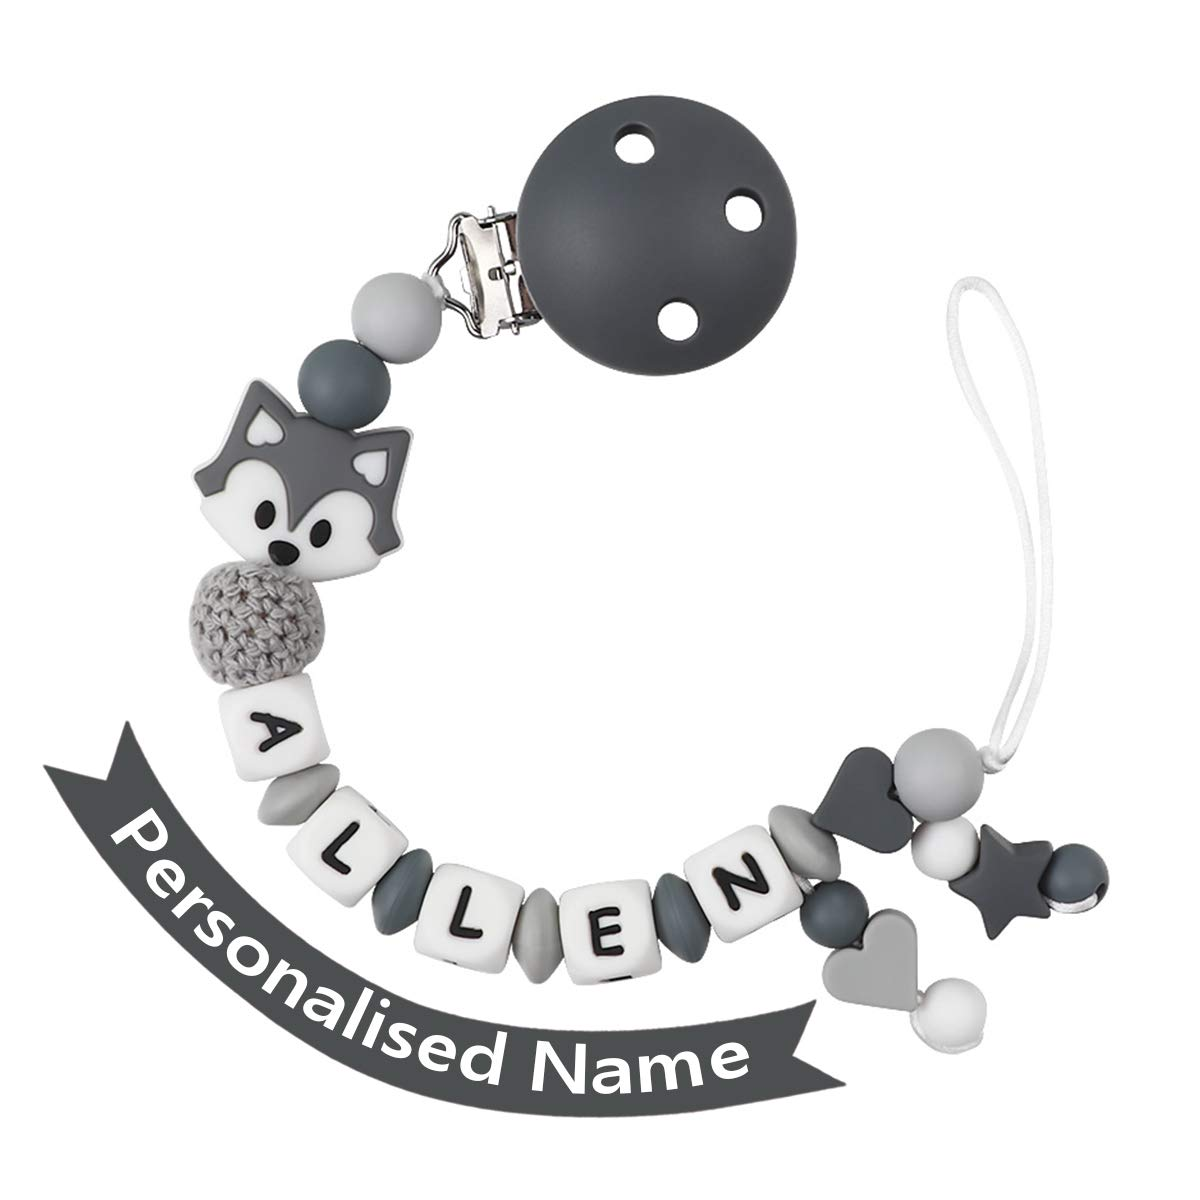 Dummy Clips Personalised Name Boys Teething Silicone Baby Pacifier Chain Soother Chain BPA Free Teething Relief Beads Binky Teether Holder Set Fox Grey with Teething Ring